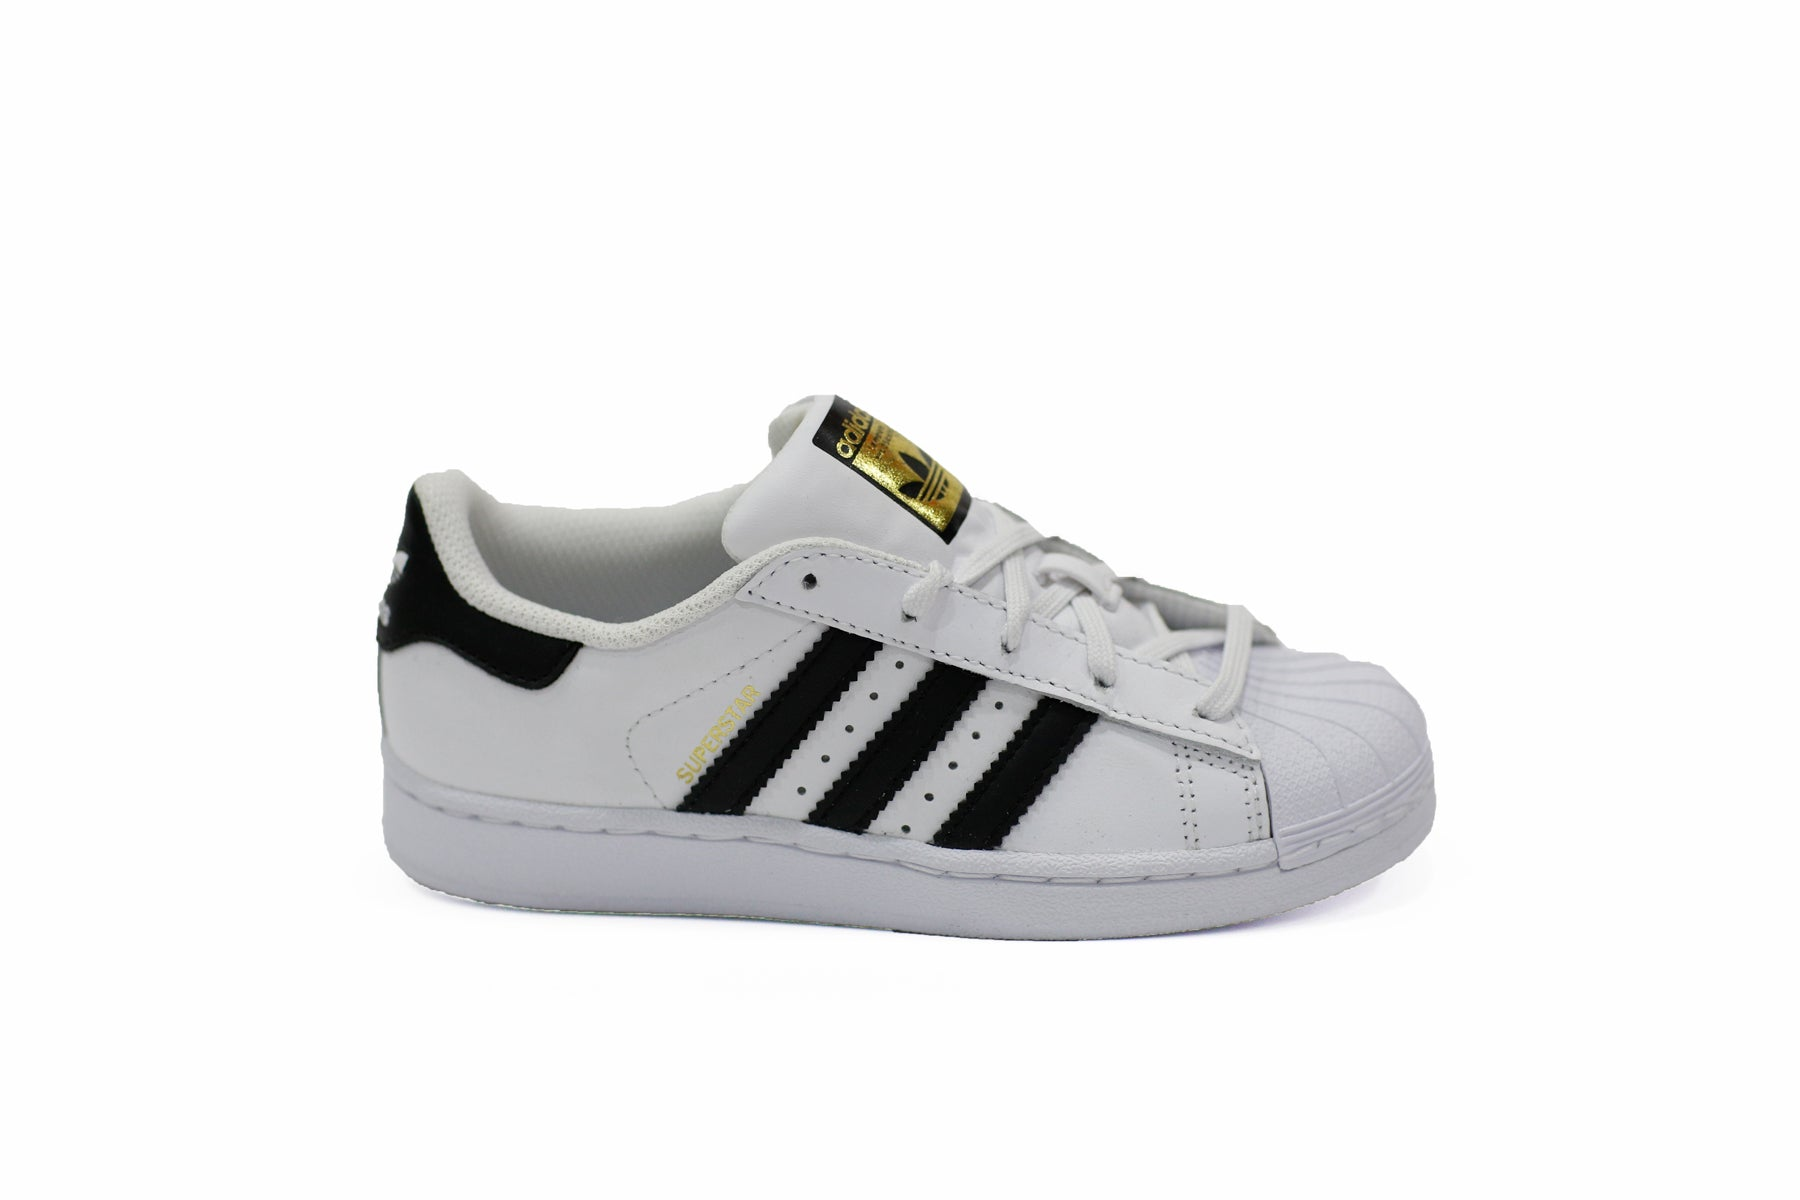 Adidas Superstar C BA8378